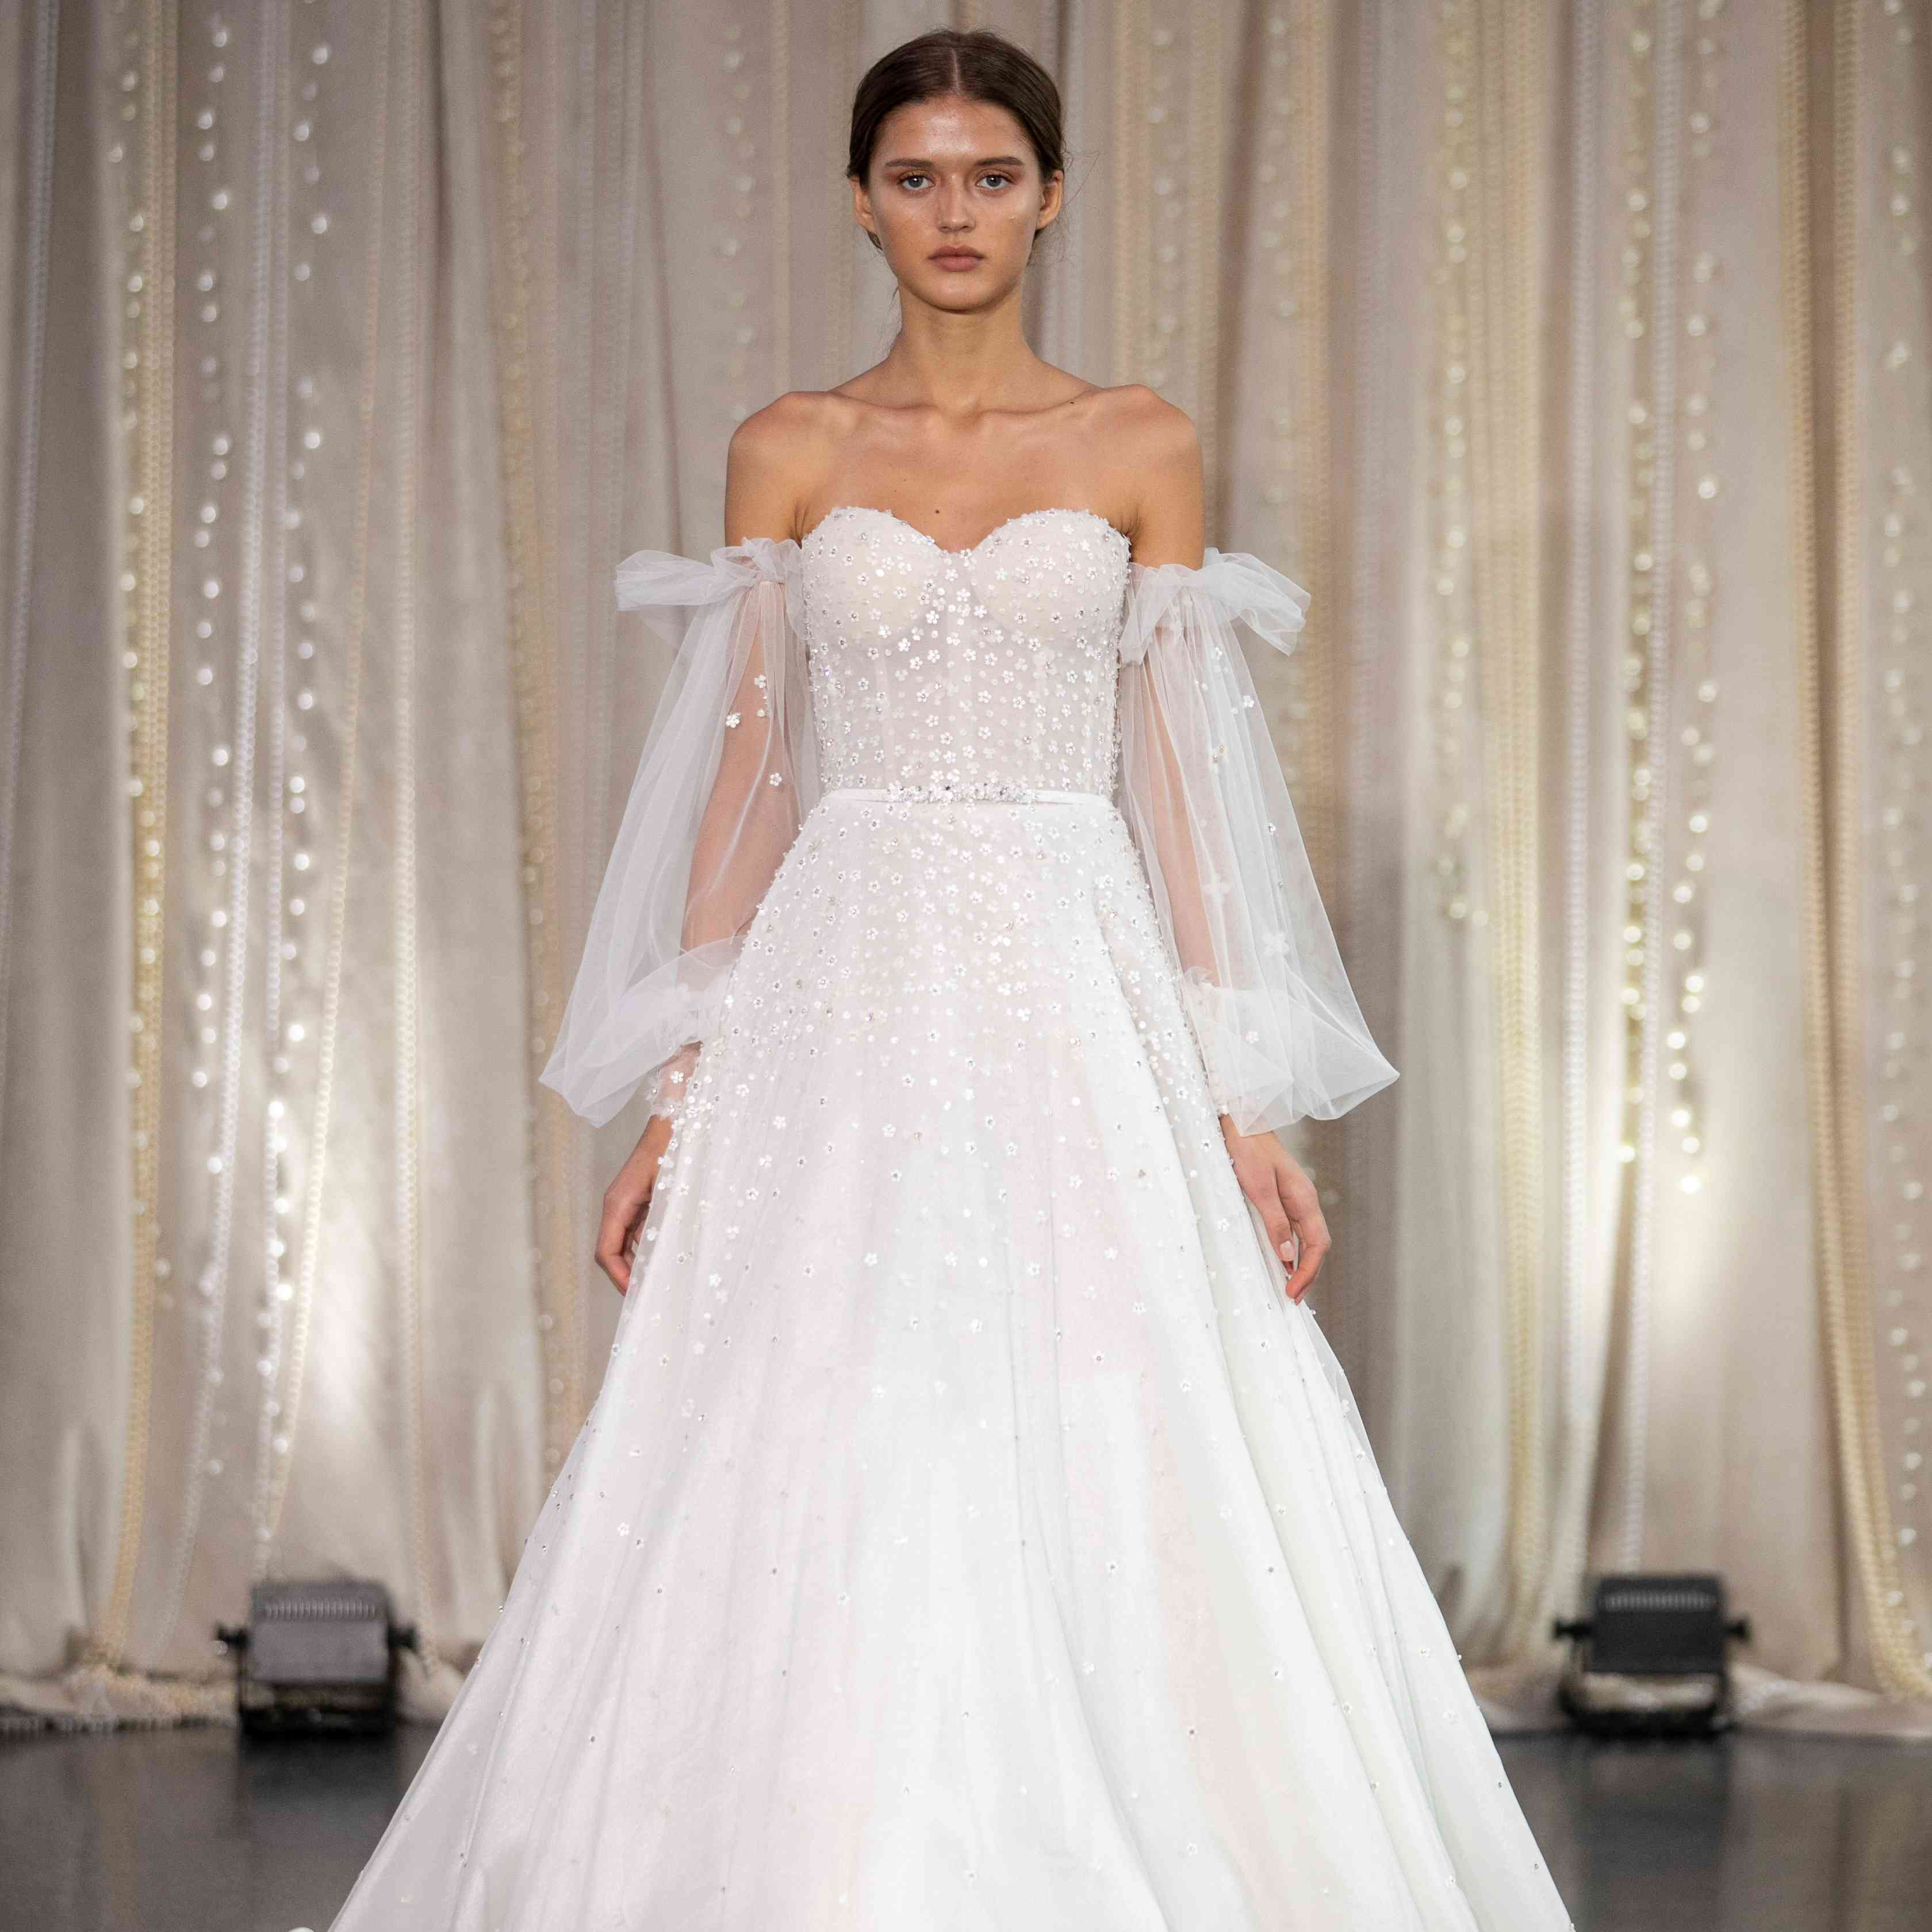 Model in off-the-shoulder wedding ball gown